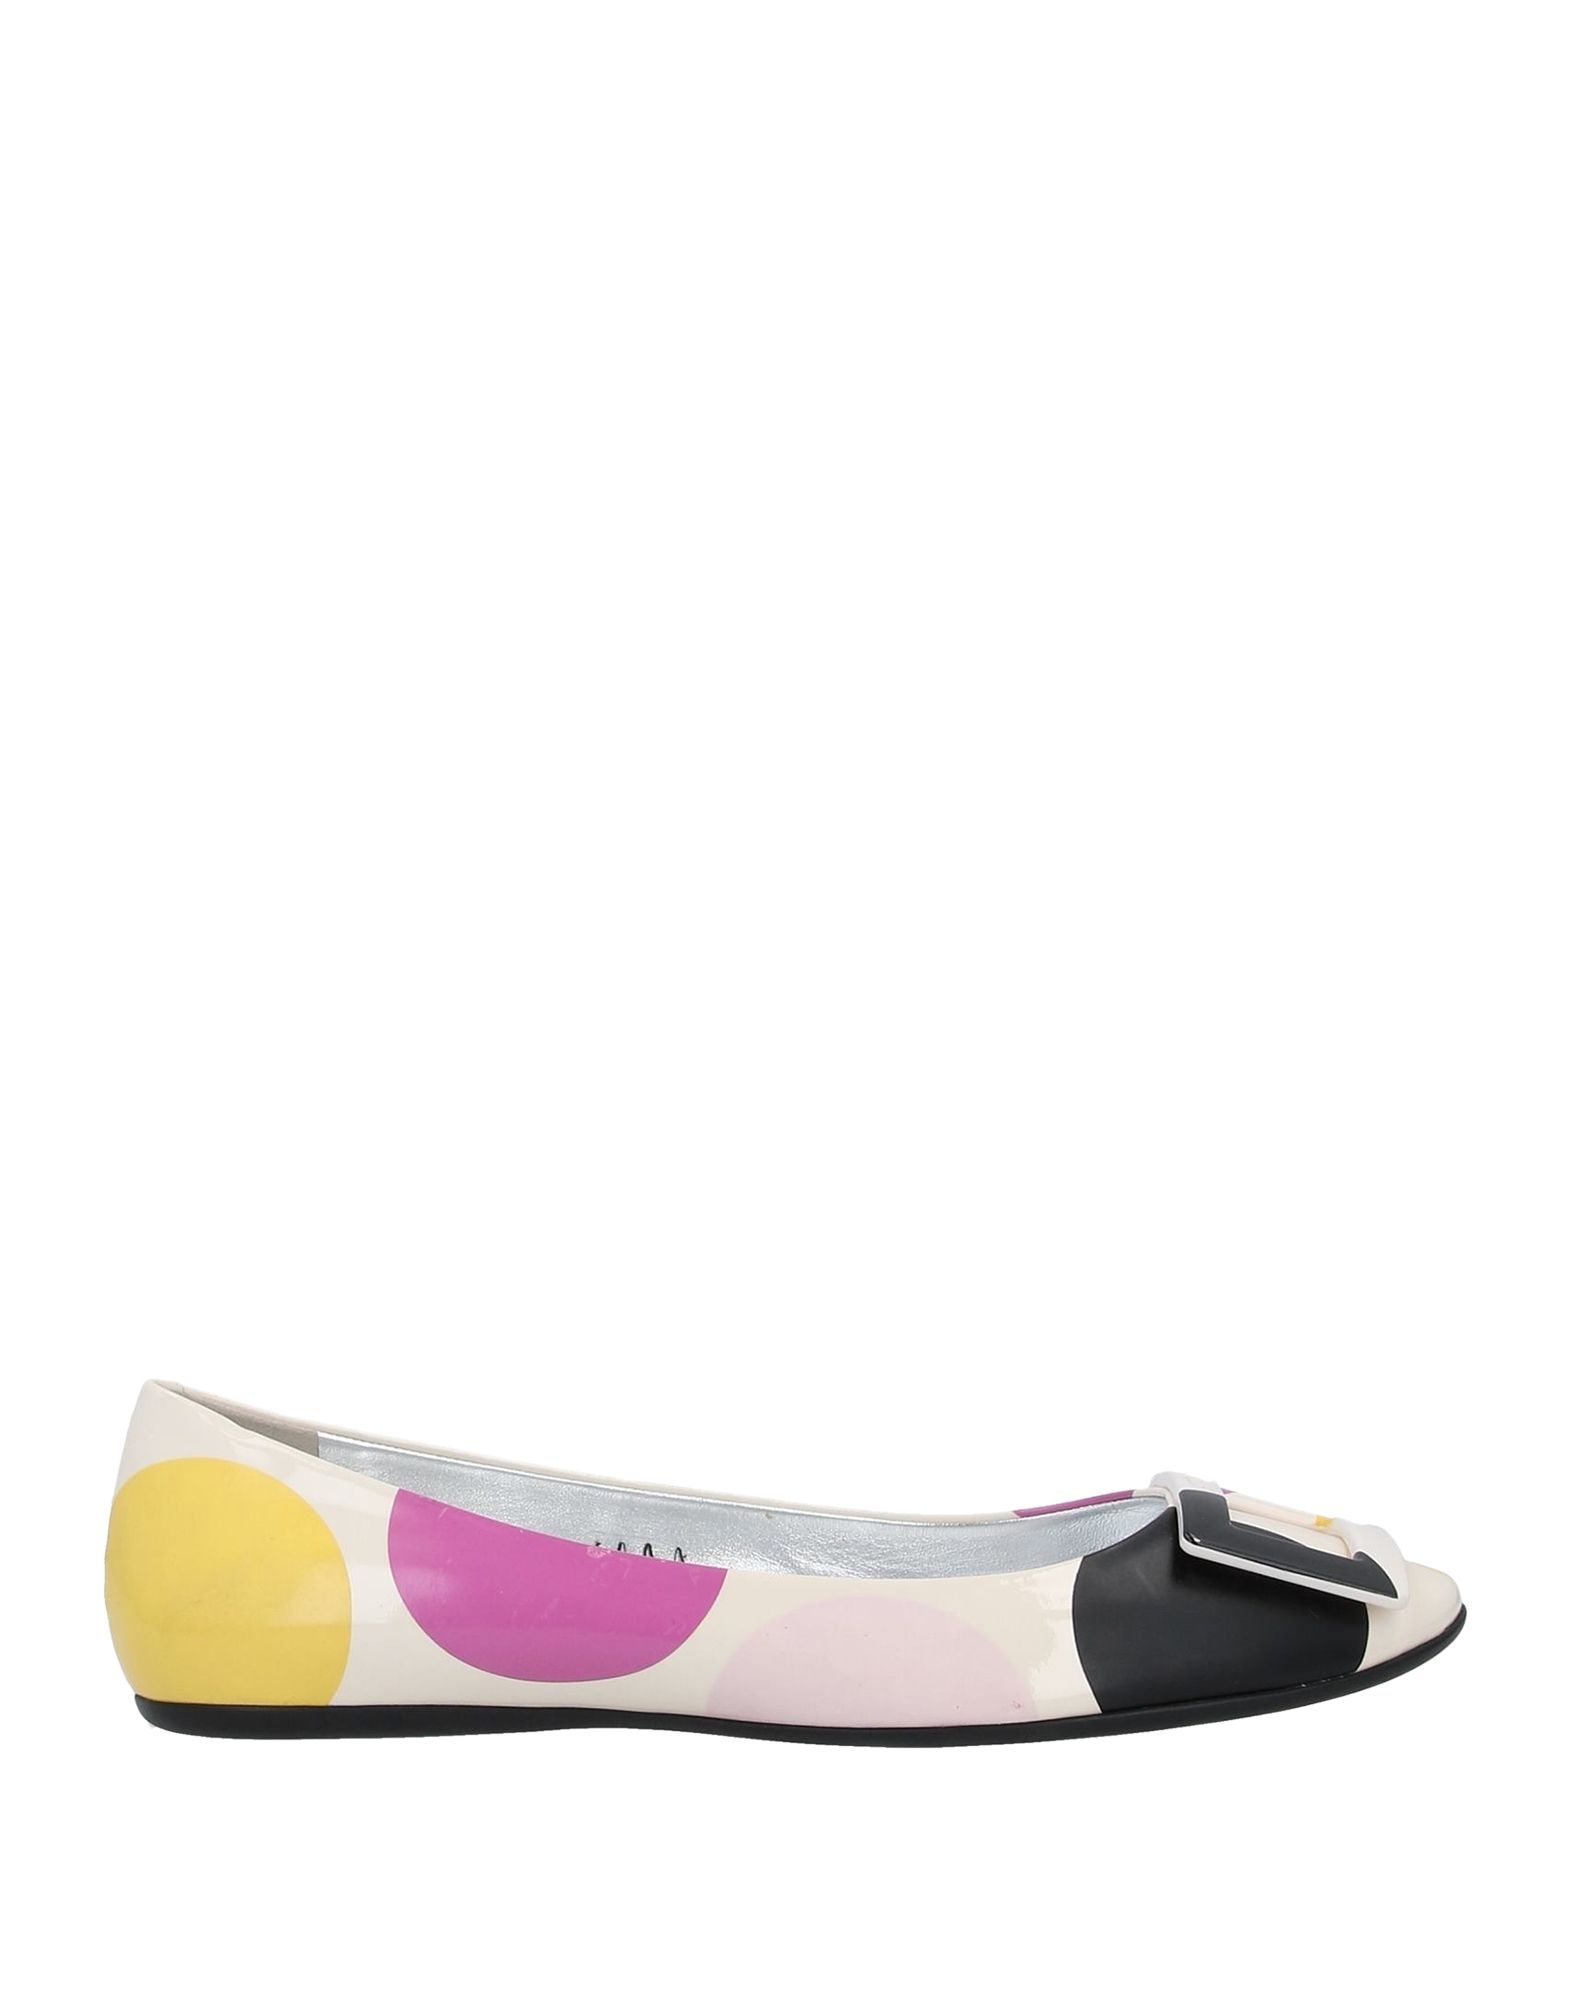 ROGER VIVIER Ballet flats. logo, polka-dot, round toeline, flat, rubber sole, leather lining, contains non-textile parts of animal origin. Soft Leather